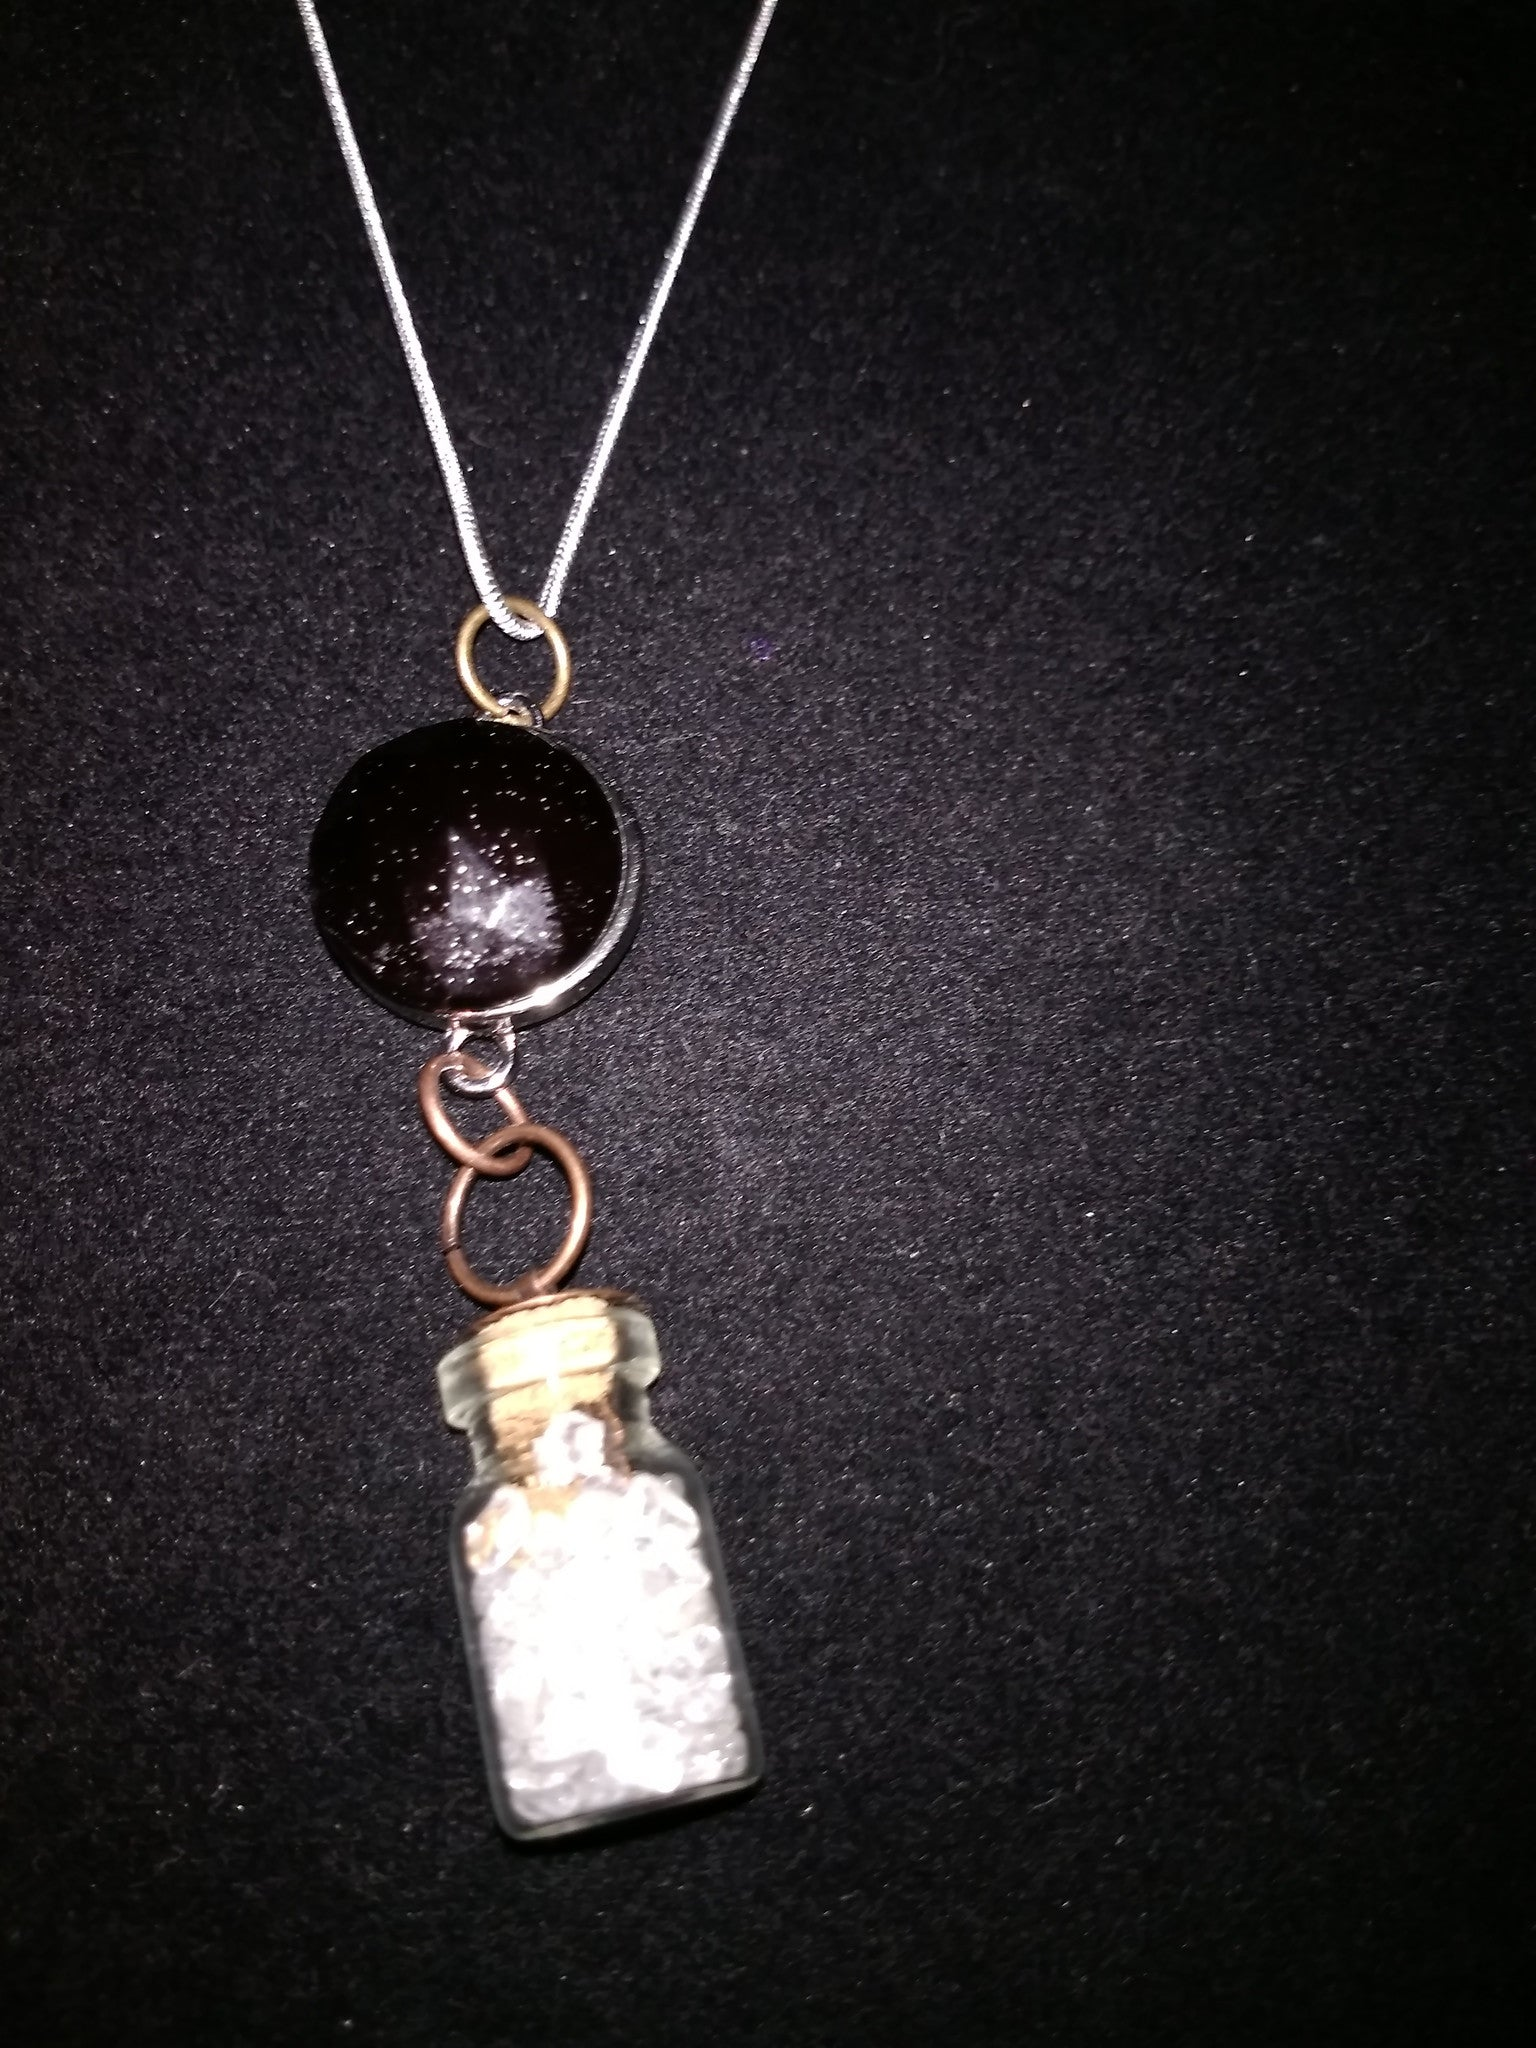 Crystals in a bottle gem necklace with removable snap